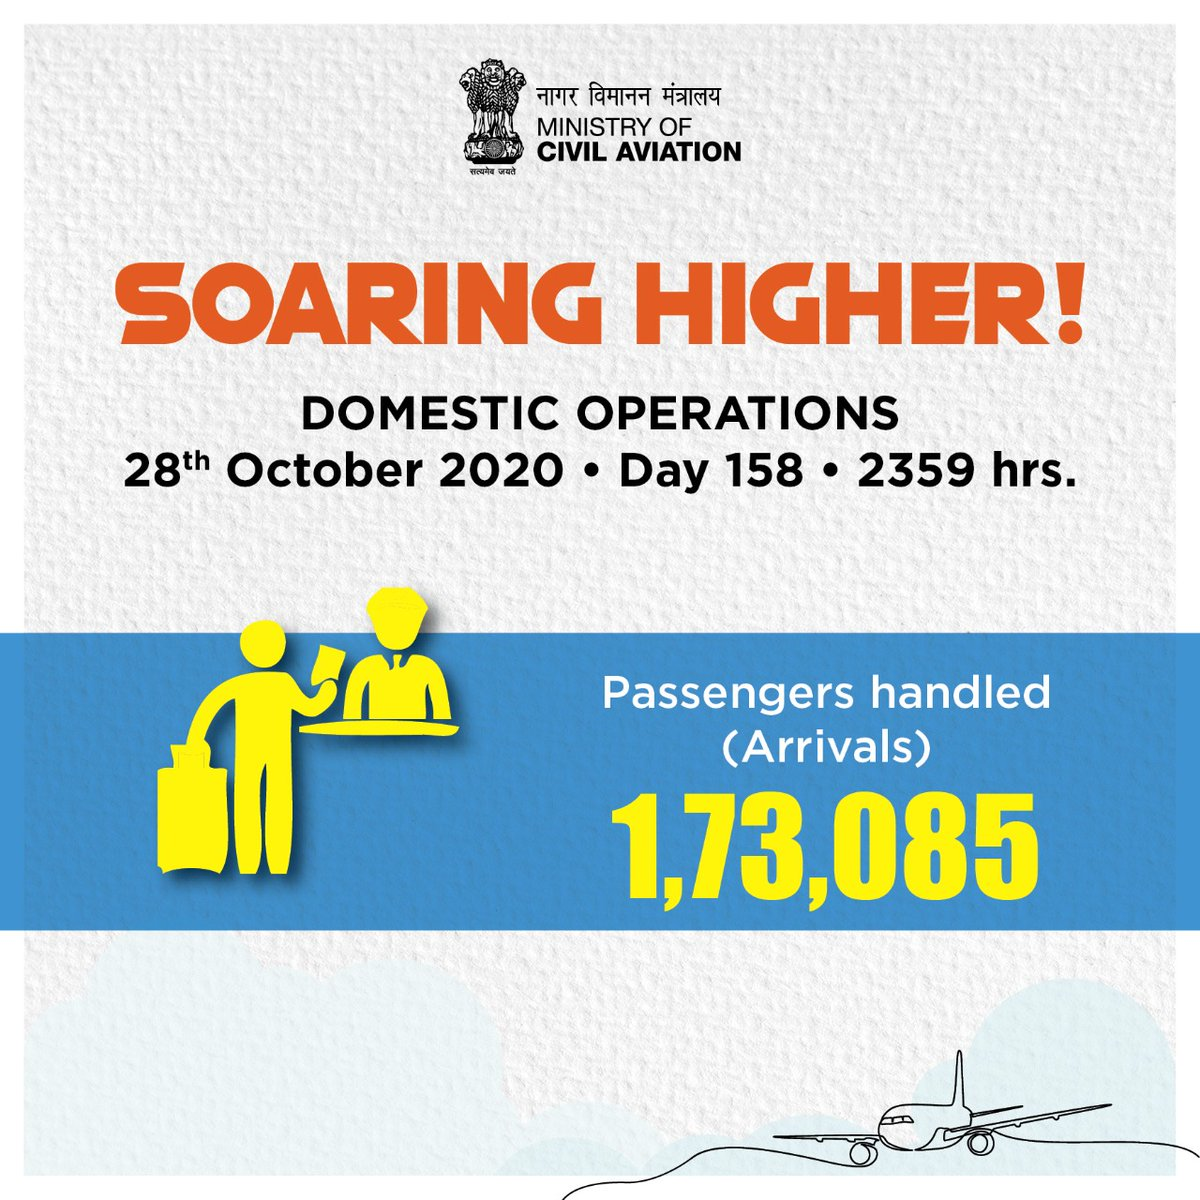 India soaring higher!  1,73,085 passenger arrivals took place across the country on 28th October. Aviation operations continue to soar! #SabUdenSabJuden #IndiaFliesHigh https://t.co/C3KdOA7kcm